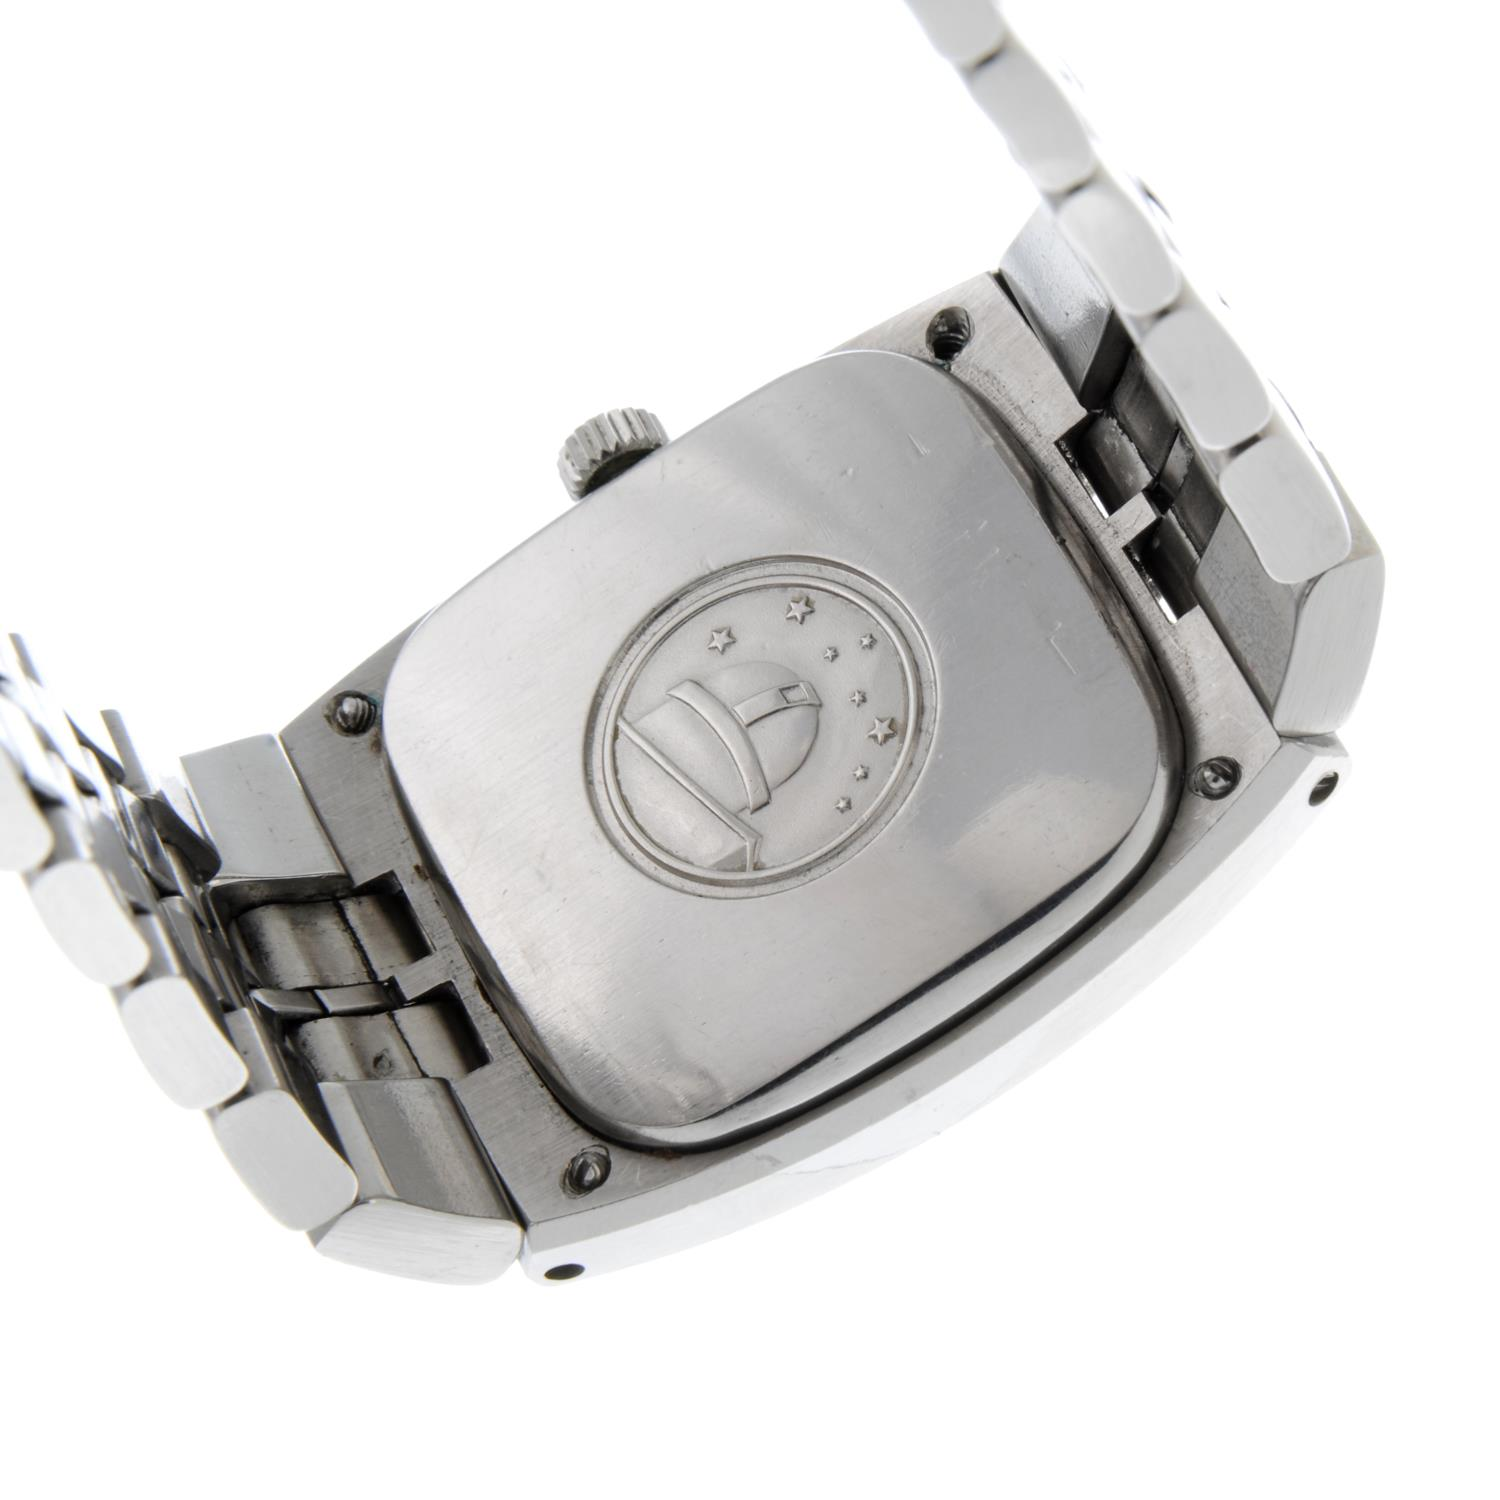 OMEGA - a Constellation bracelet watch. - Image 4 of 4